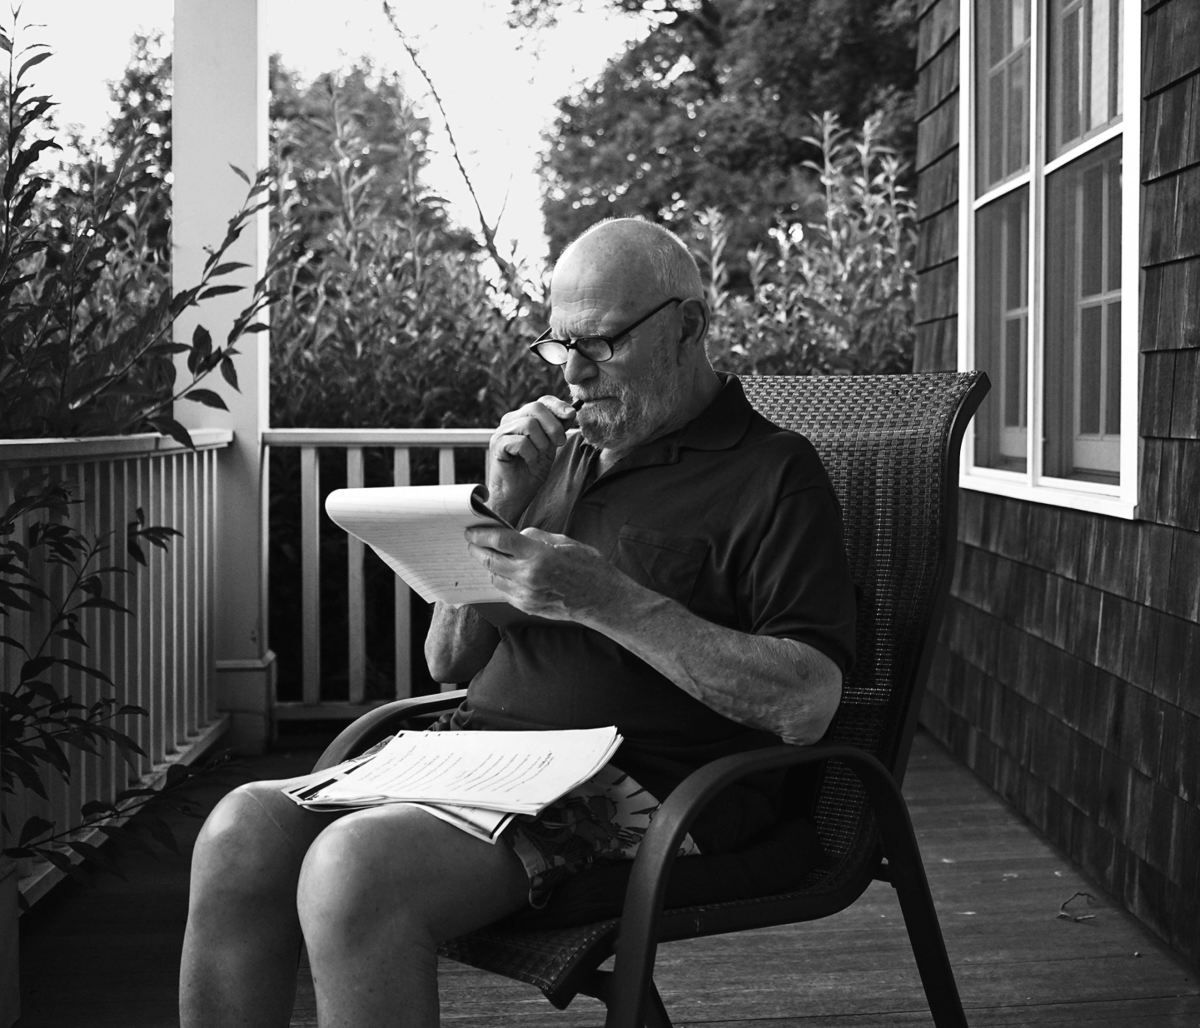 Gefilte fish: the last thing Oliver Sacks ever wrote about. Memories of Gefilte Fish - The New Yorker